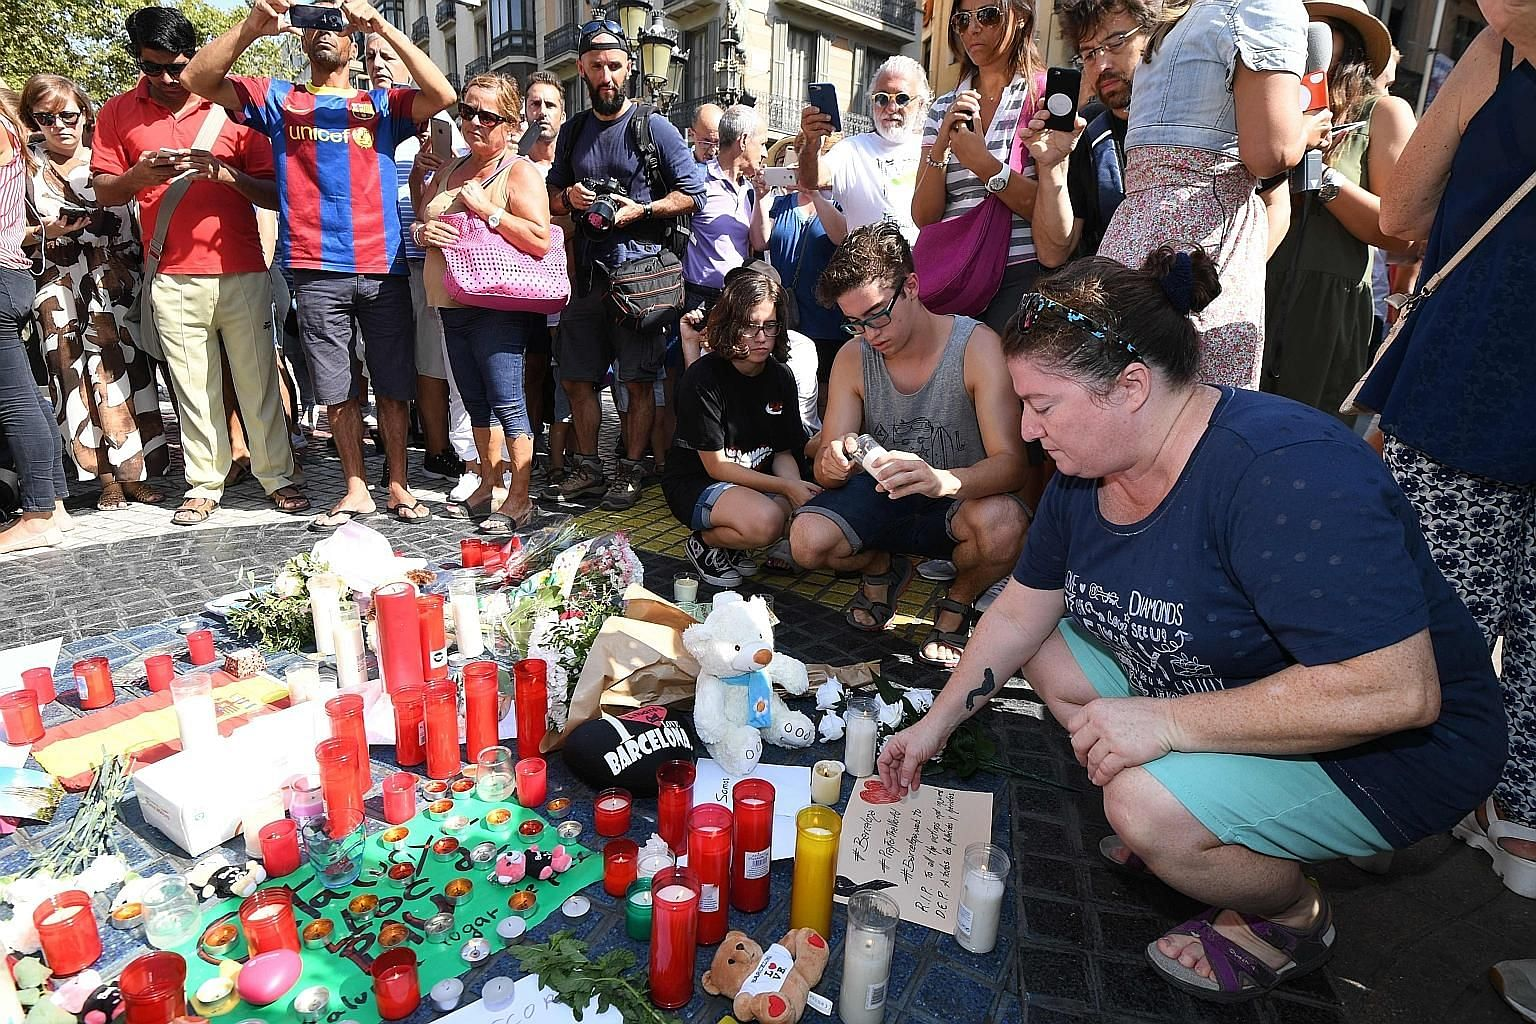 People paying their respects to the victims of the van attack at a makeshift memorial set up on the Las Ramblas promenade in Barcelona yesterday. The attack killed at least 13 people and injured more than 100 others.